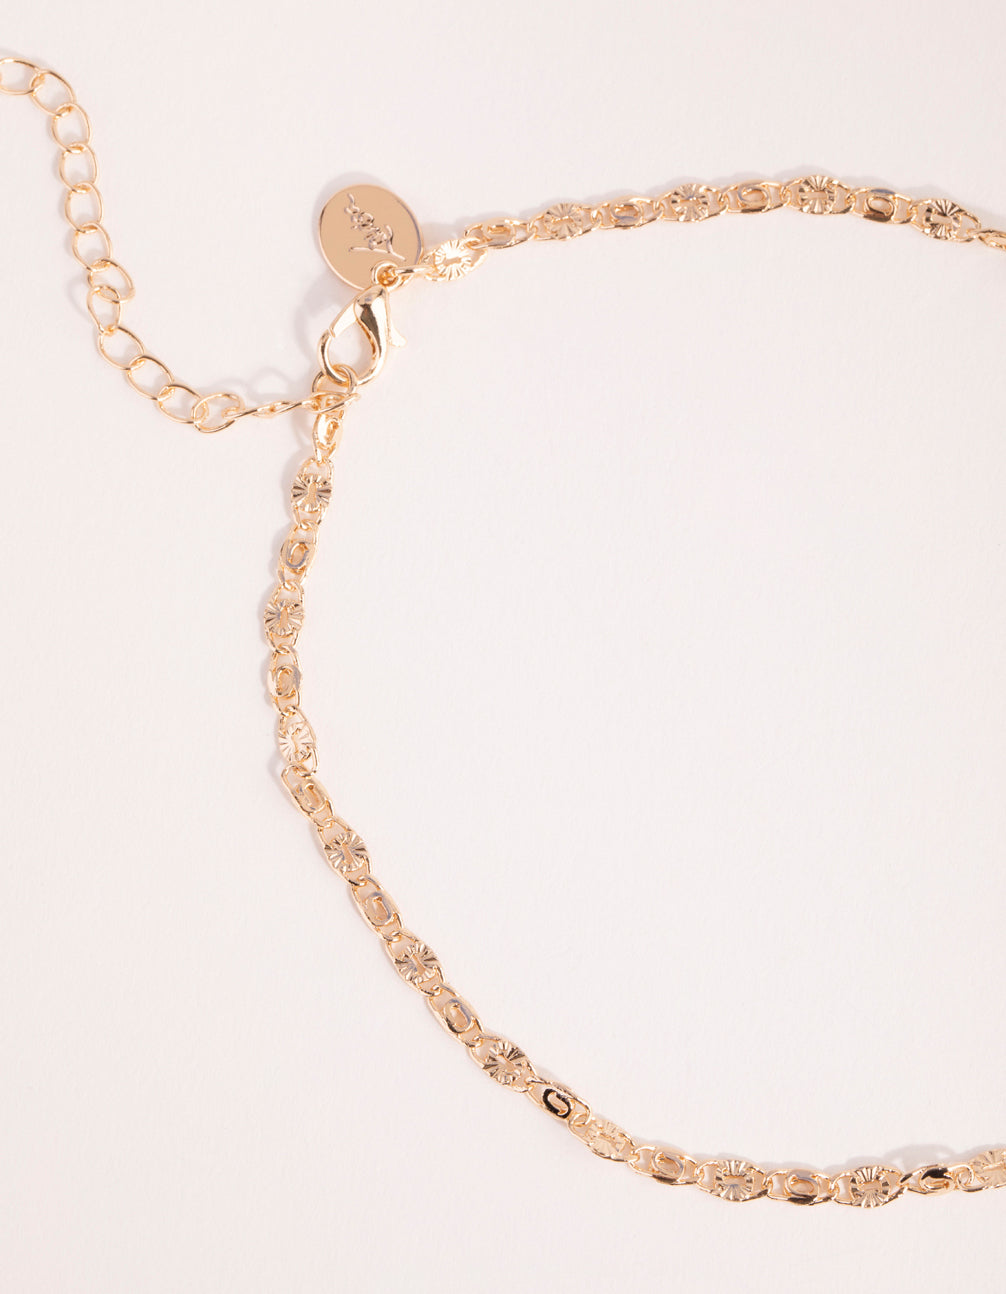 Gold Textured Choker Necklace